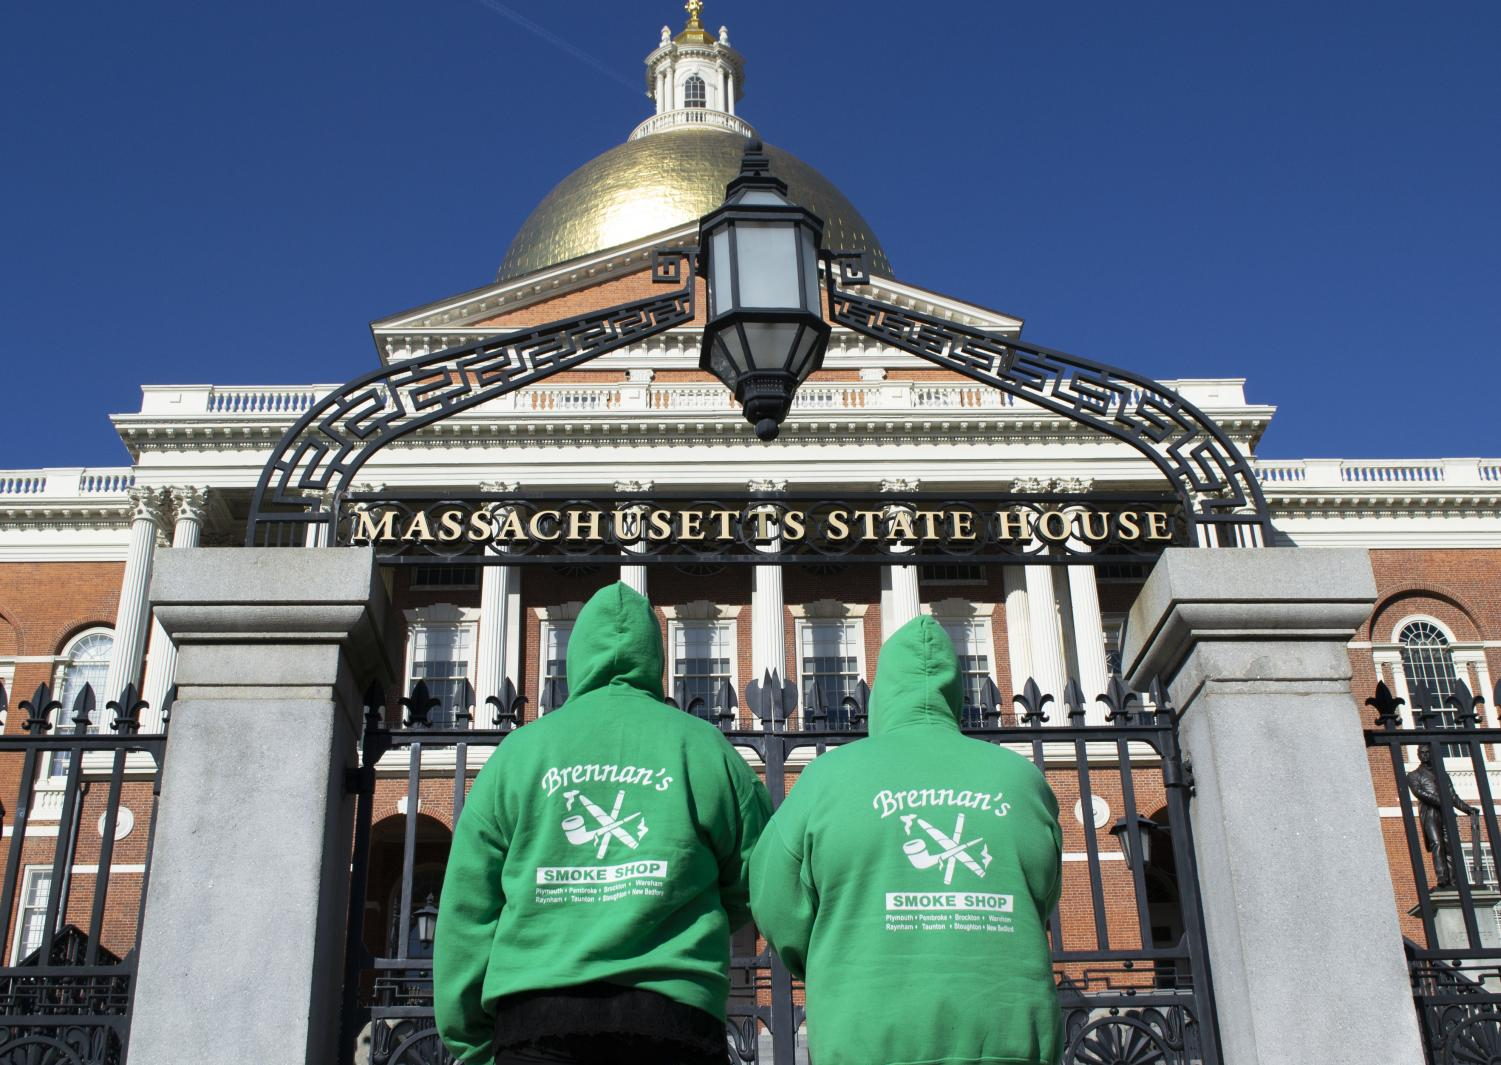 Kristen Brennan and Hannah Magnuson, both employees at Brennan's Smoke Shop, stand in front of the Massachusetts State House in protest of the menthol ban.